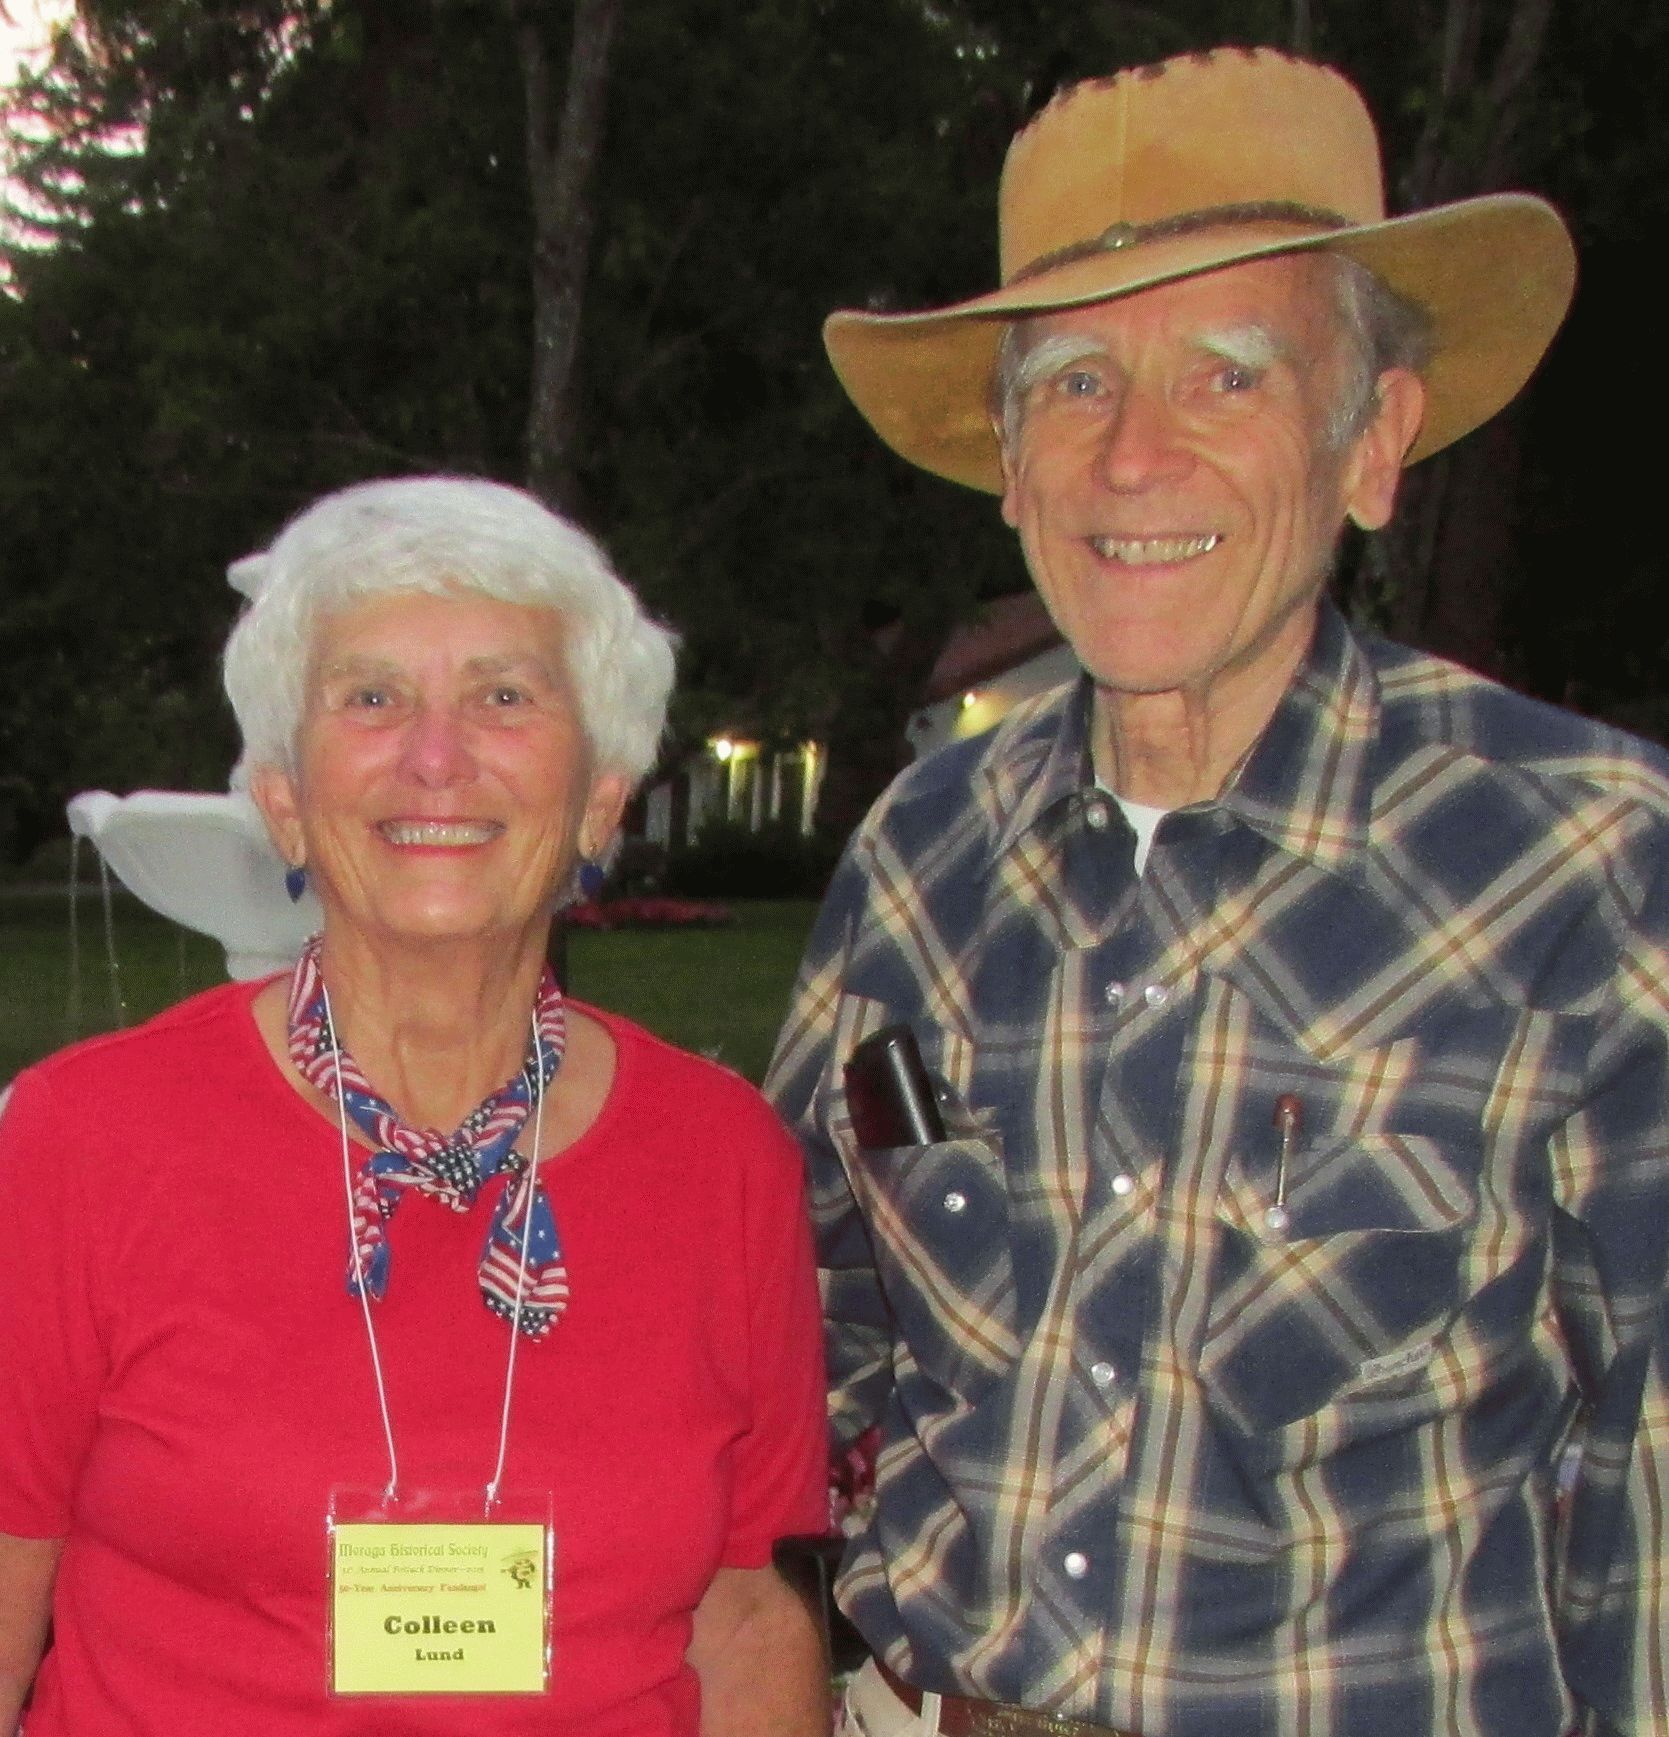 Bill and Colleen Lund